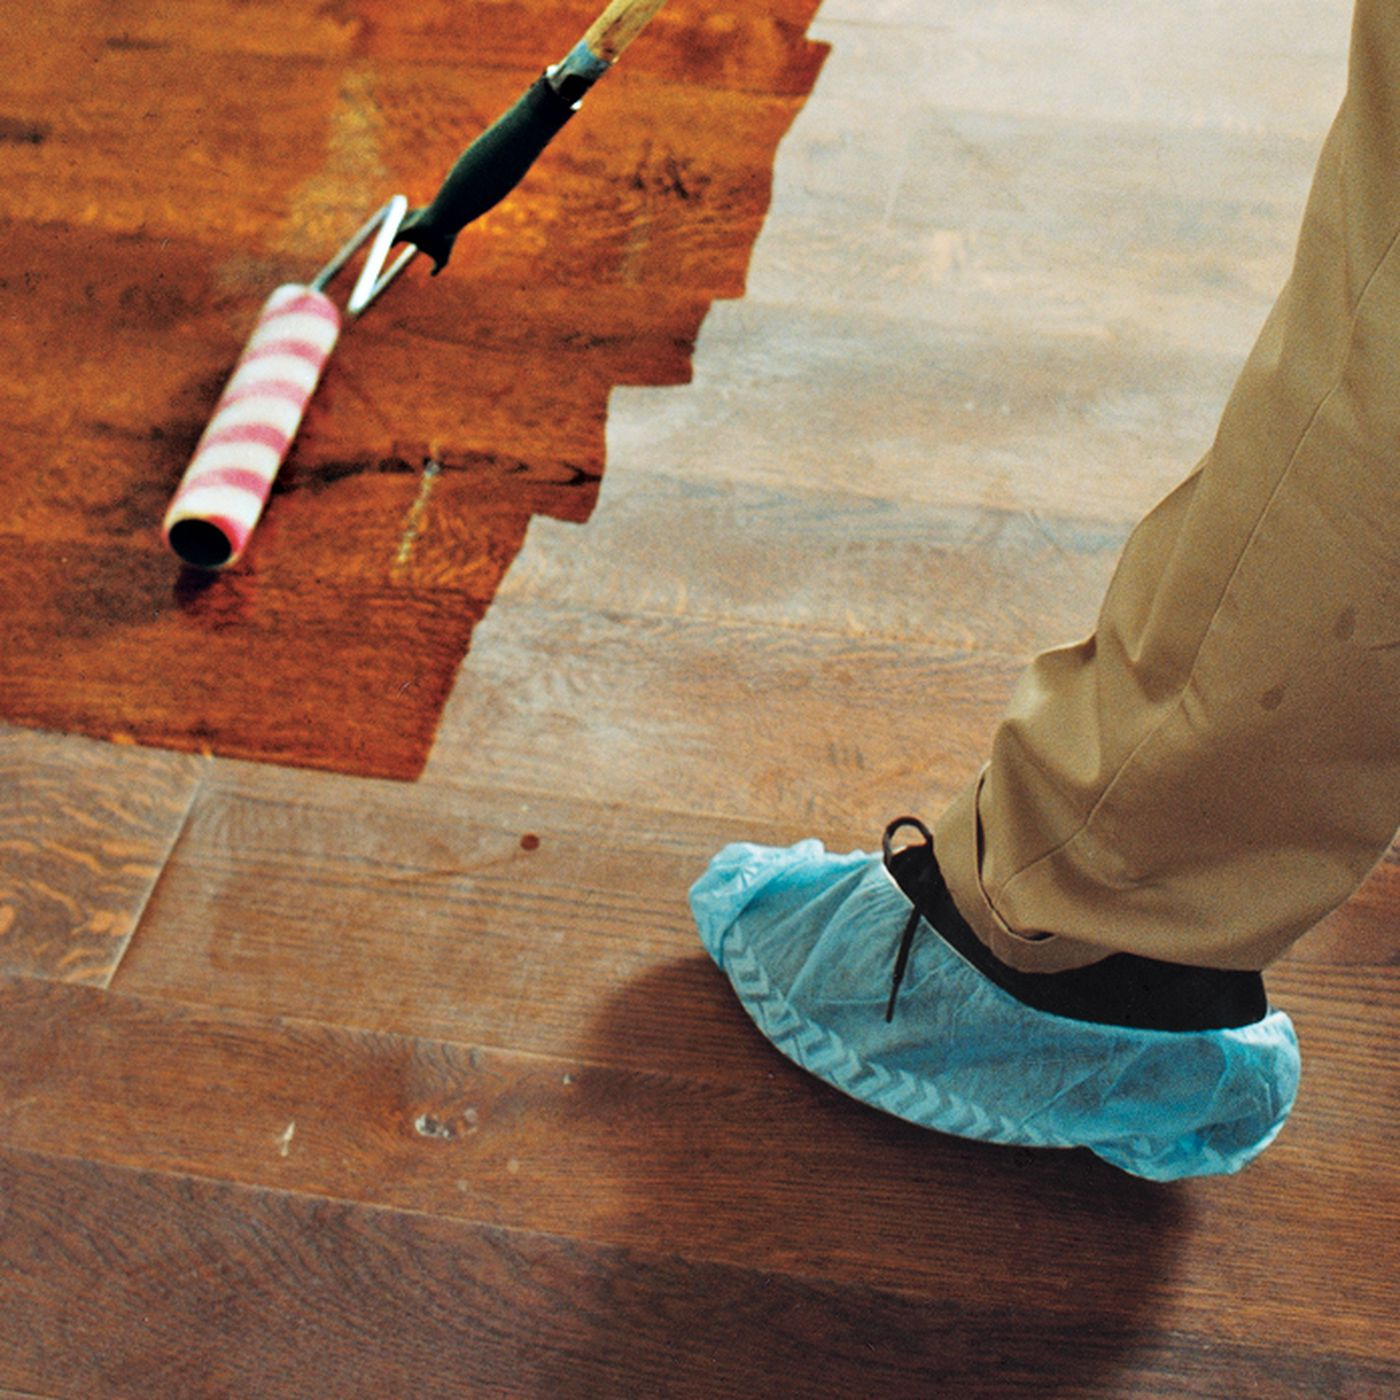 Hardwood Floor Refinishing Made Easy This Old House,Dog Licking Paws Red